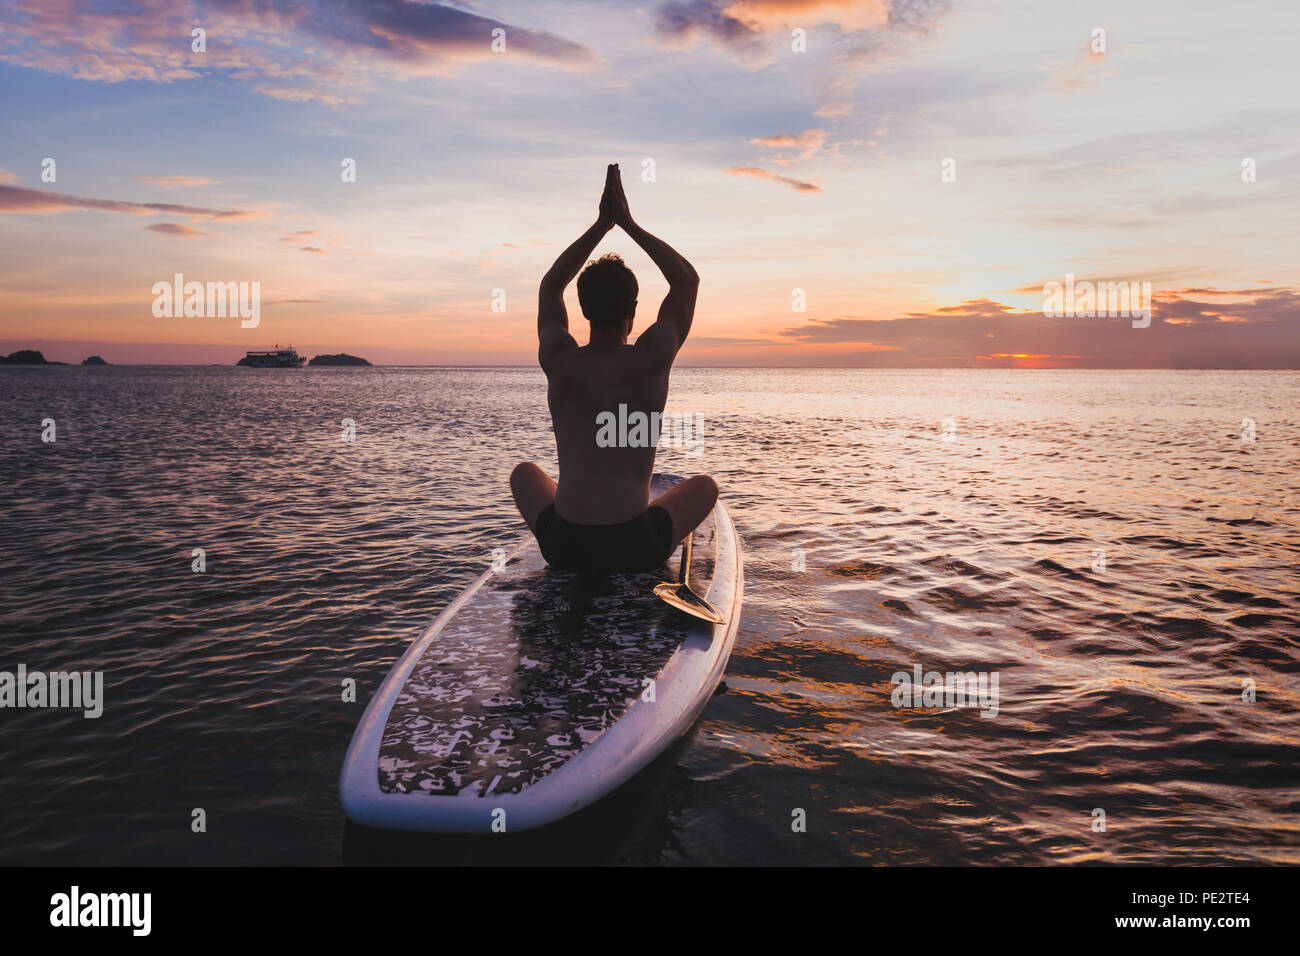 yoga on SUP, silhouette of man sitting in lotus position on stand up paddle board Stock Photo